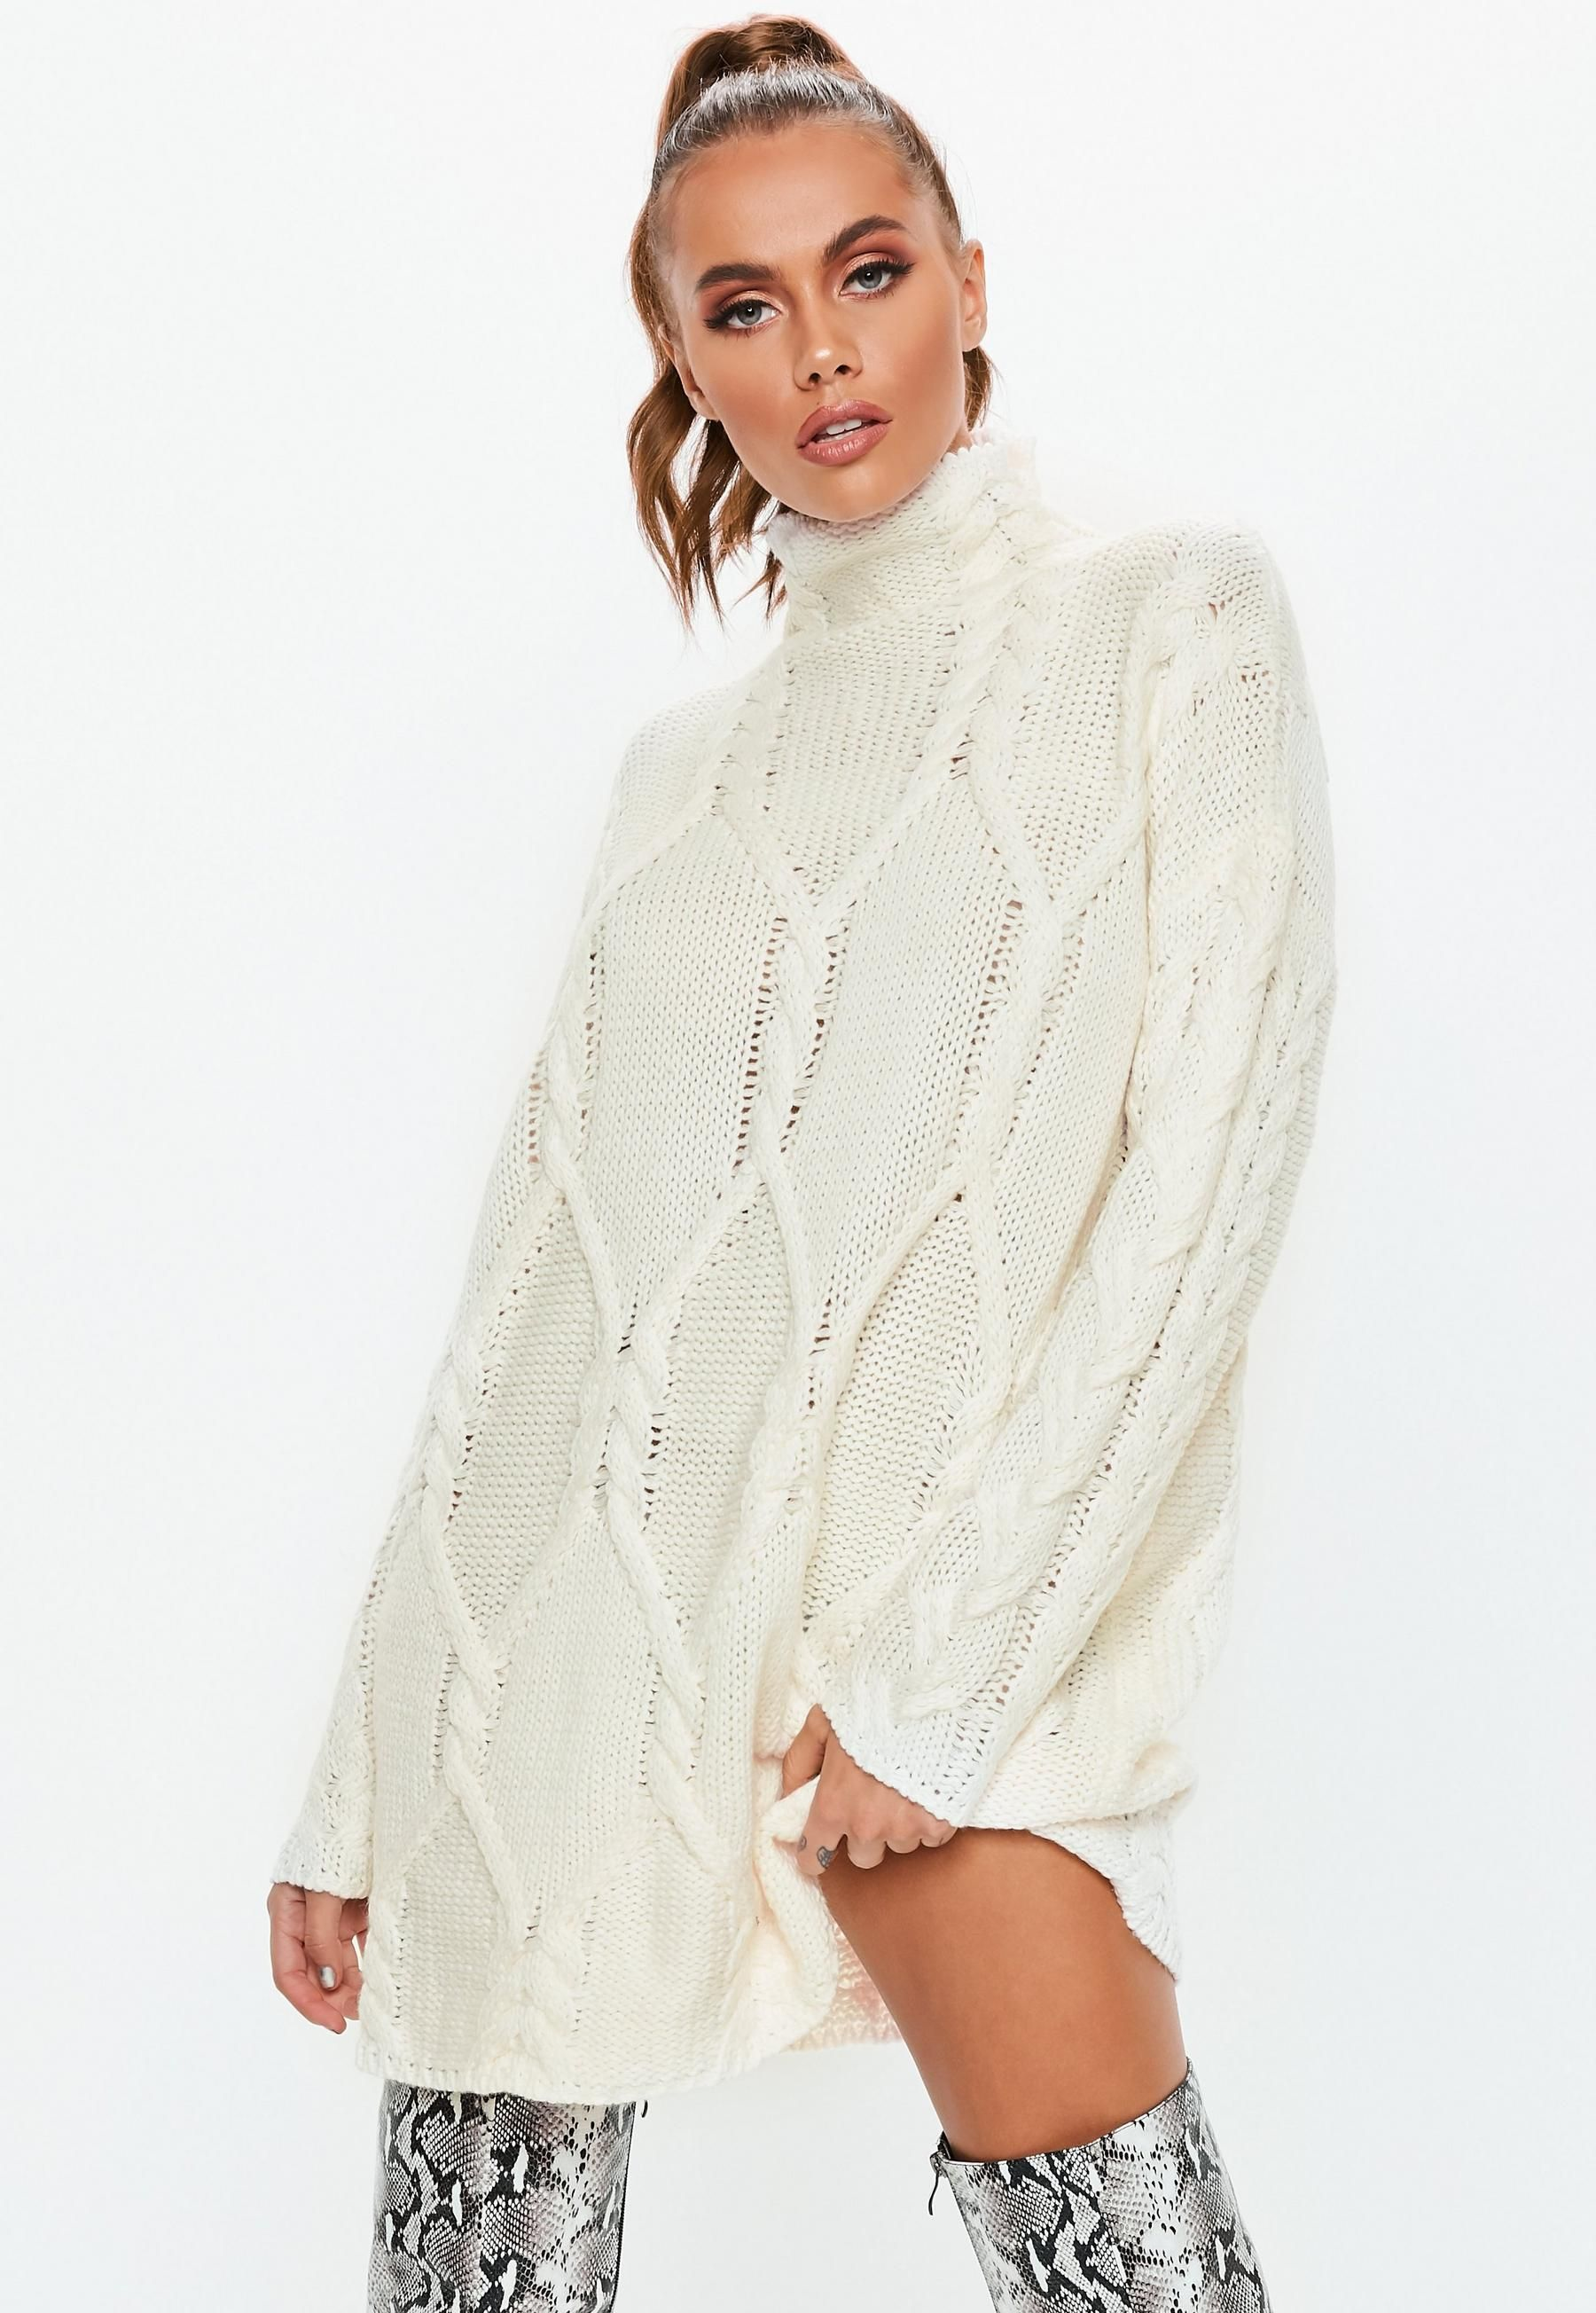 3145354a42b58d Missguided Cream Cable Knit High Neck Sweater Dress in 2019 ...